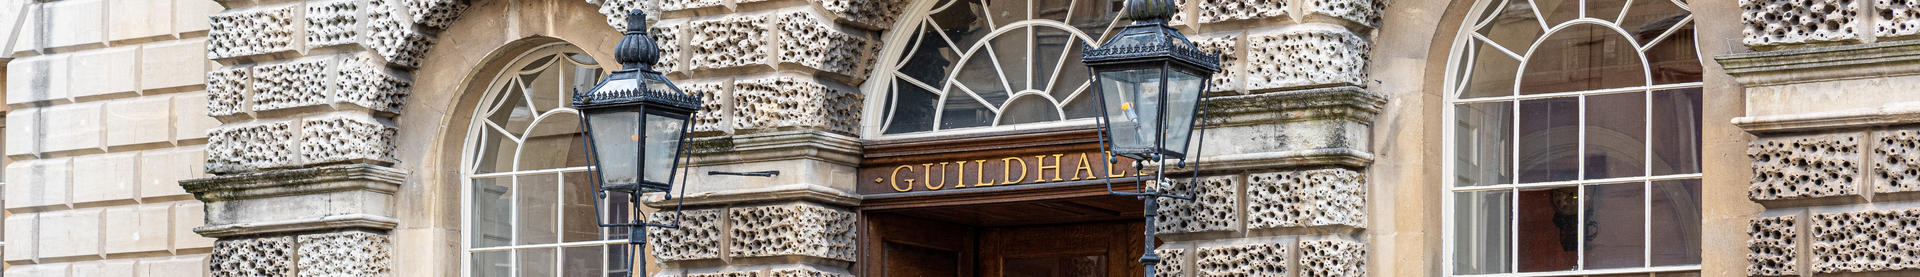 Image: Guildhall exterior